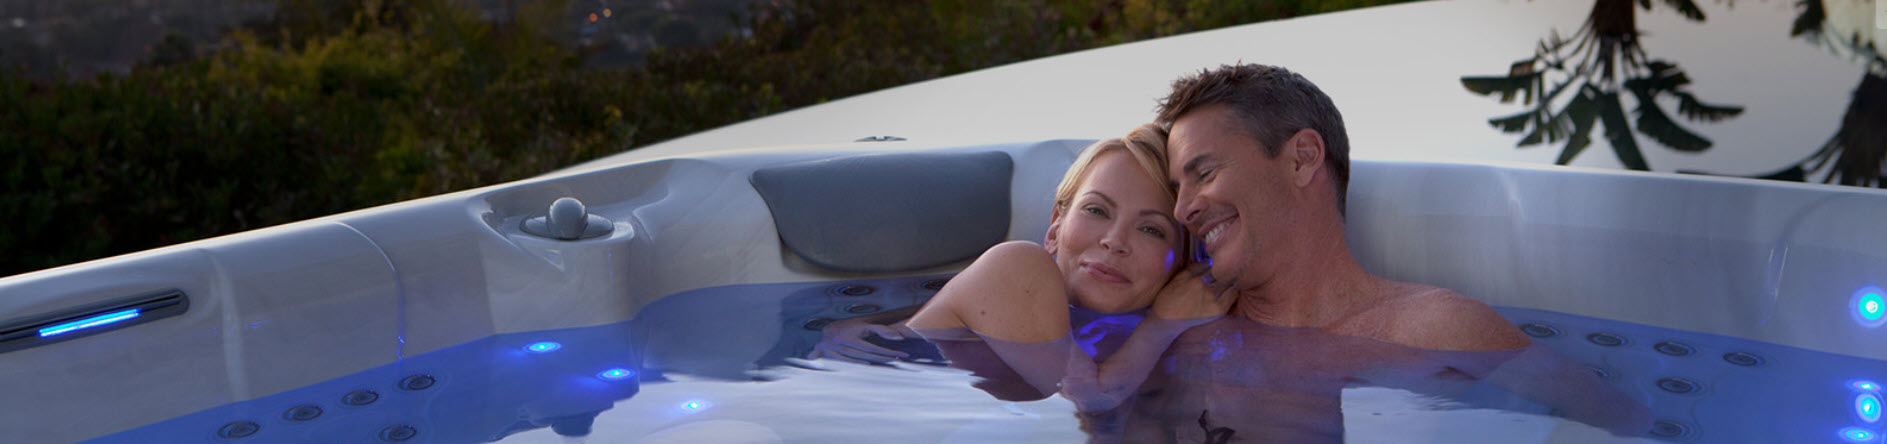 Spa Dealer Near St. Louis Selling Hot Spring Spas Supports Romance Awareness Month